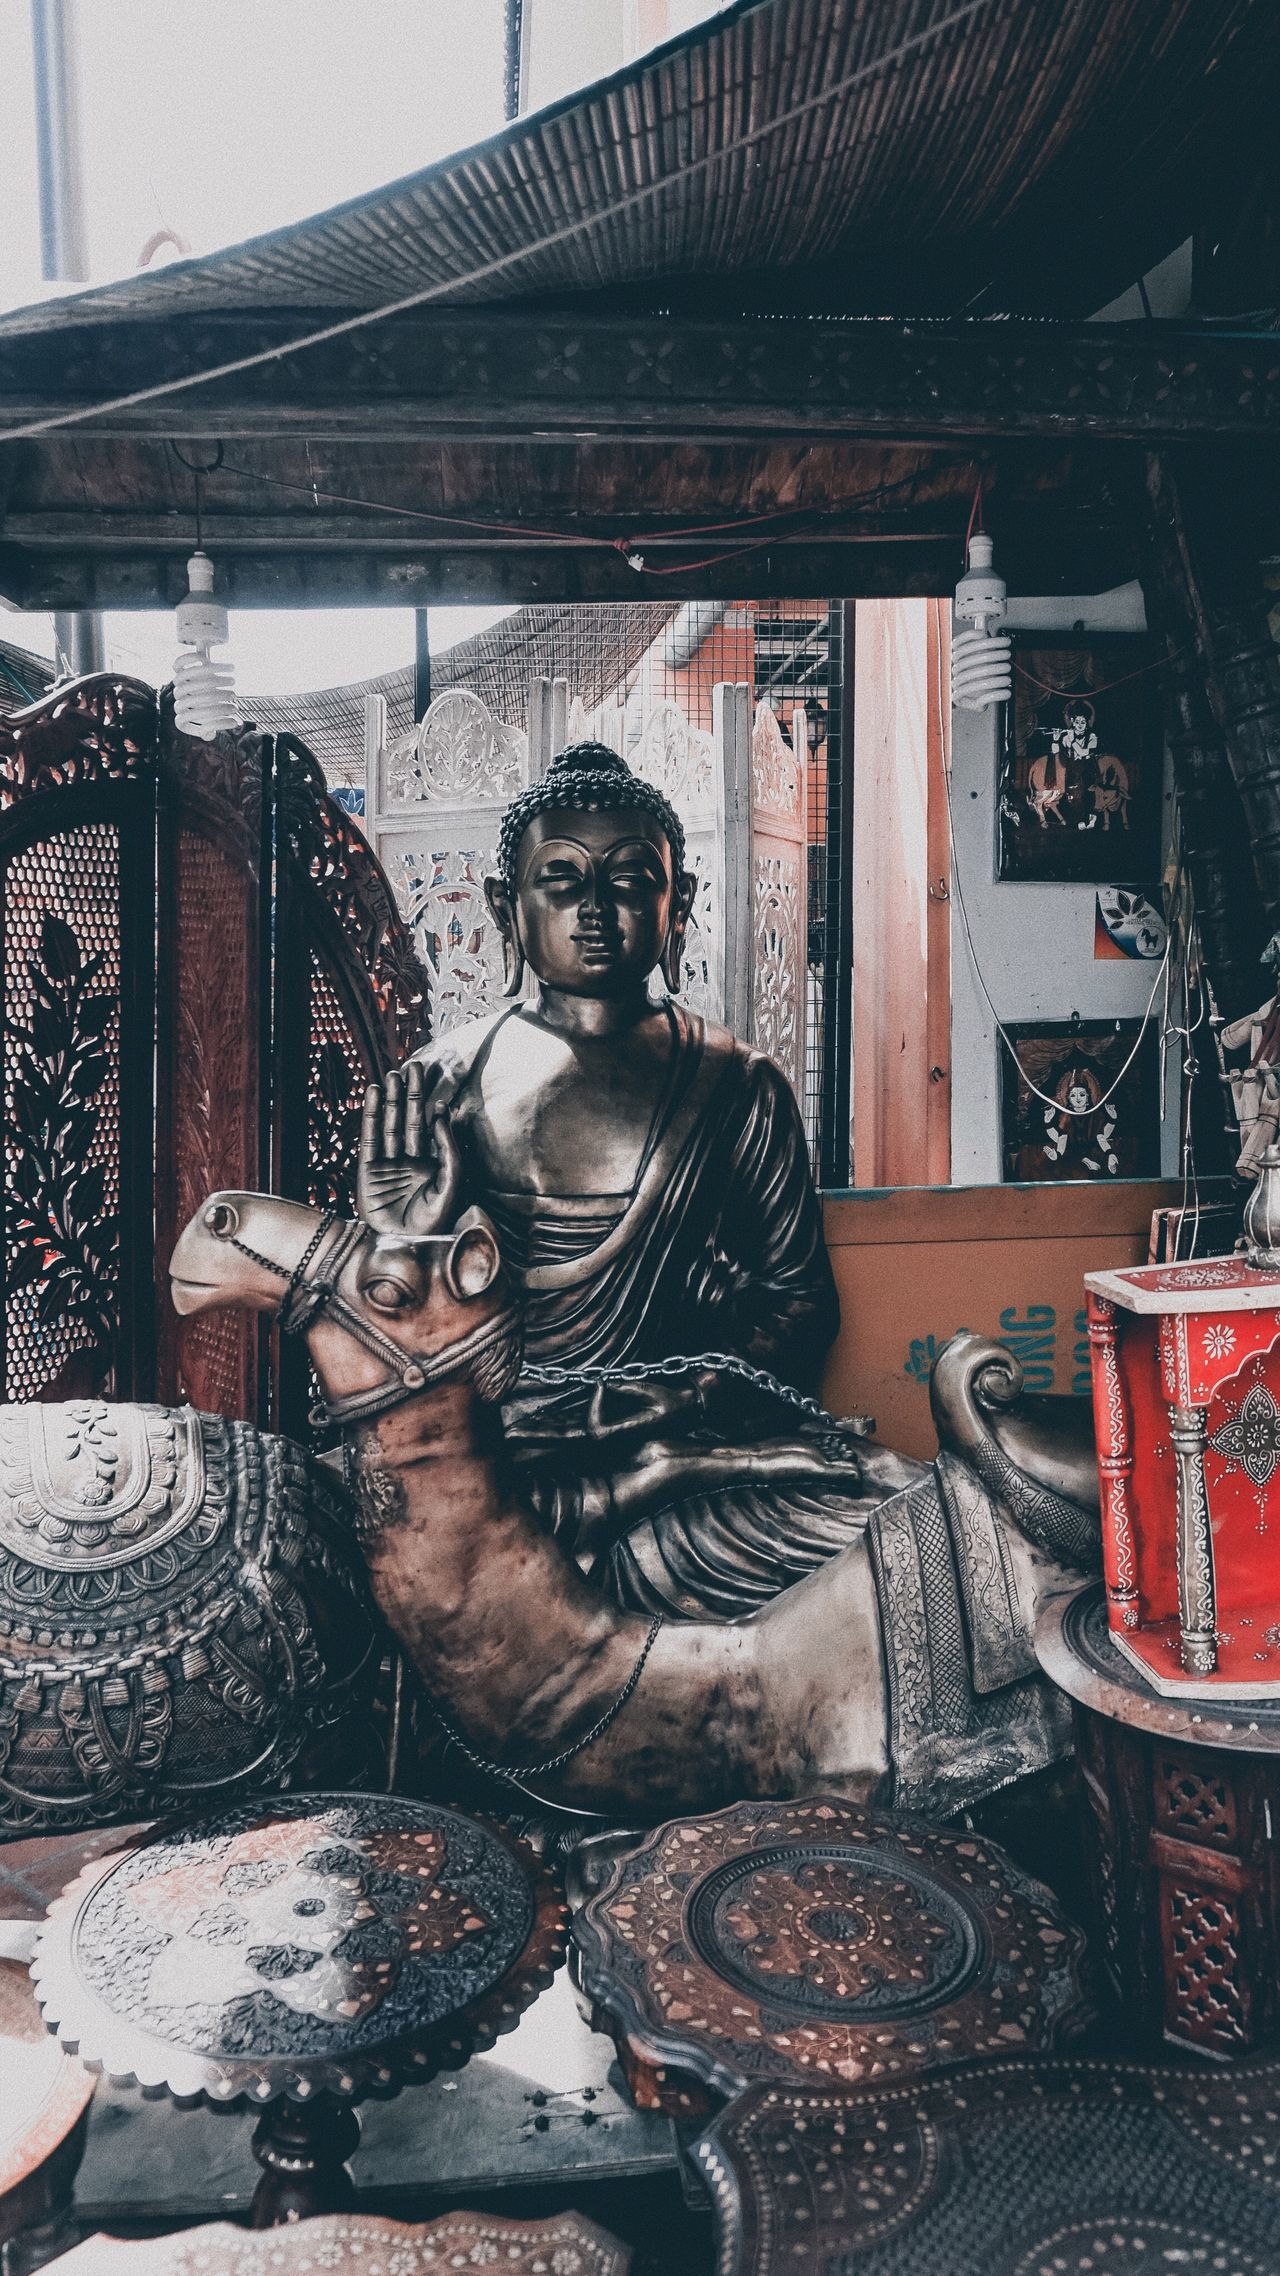 I will never forget this shop. I legit stayed here for like 20 minutes, drooling at the sculptures and figurines. The Chinese owner (yes I was surprised he's Chinese) was kind enough to let me take pictures Buddha Buddha Statue Singapore Travelling Travel Stories